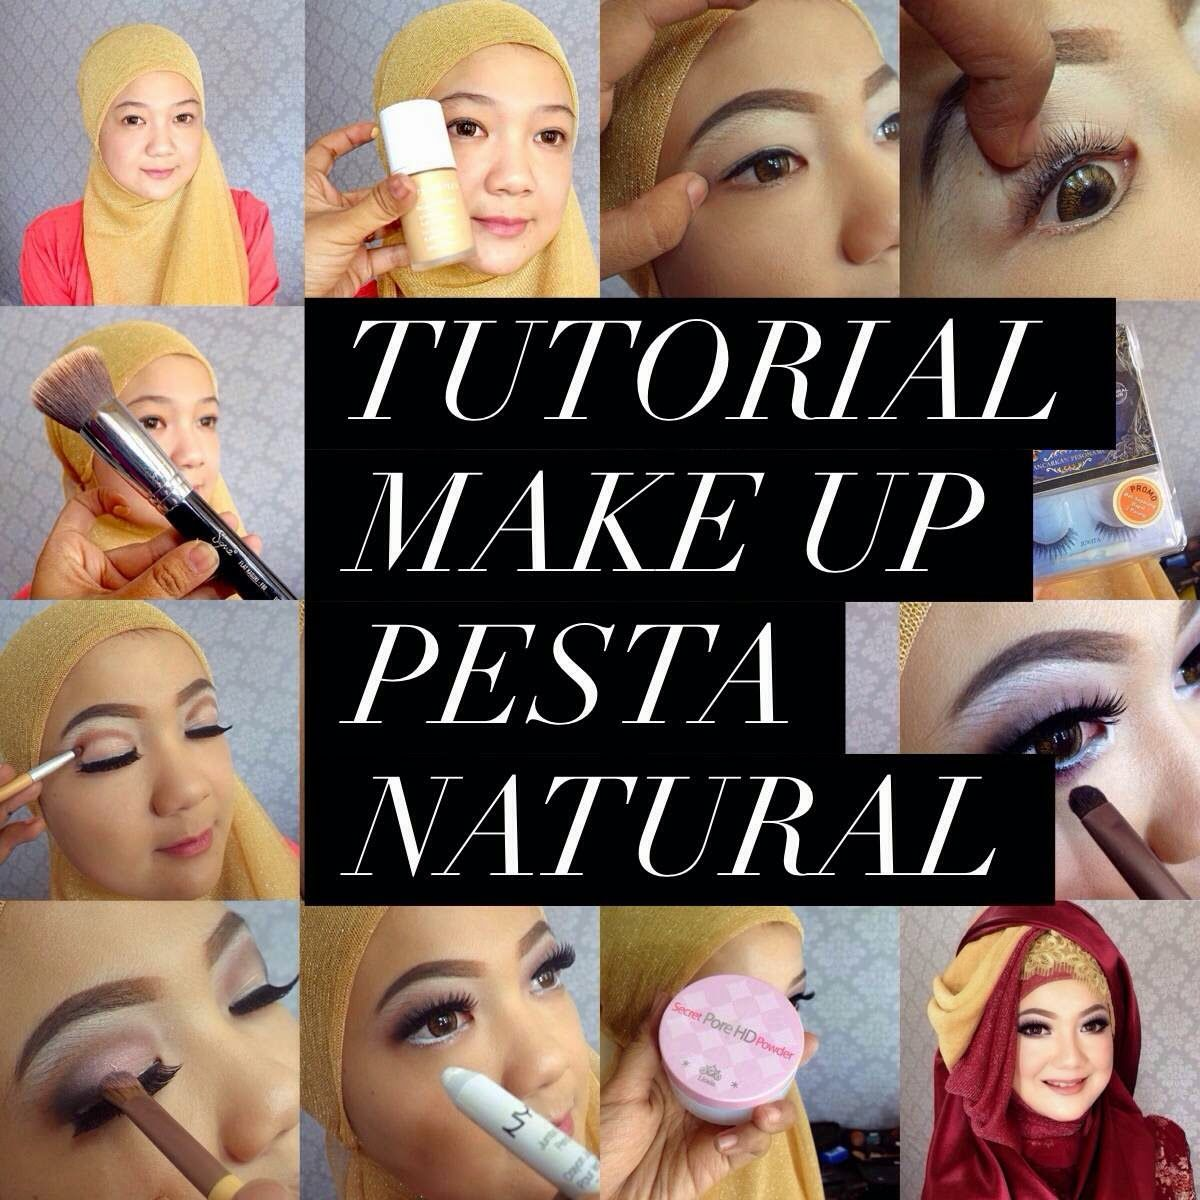 Review Sederhana Tentang Muslimah CosmeticsTutorial Make Up